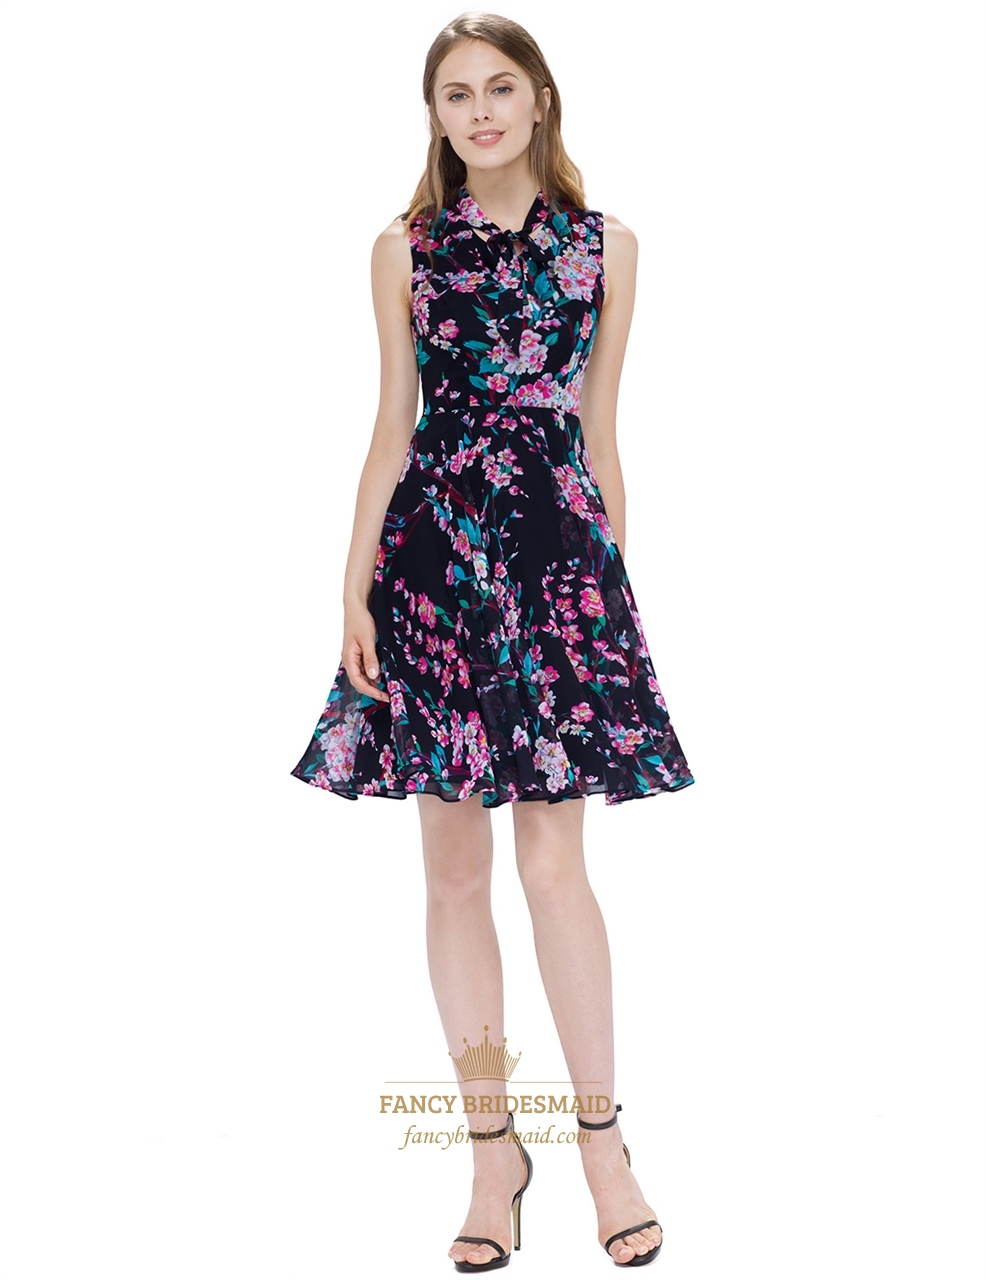 FREE SHIPPING AVAILABLE! Shop funon.ml and save on A-line Dresses Dresses,+ followers on Twitter.